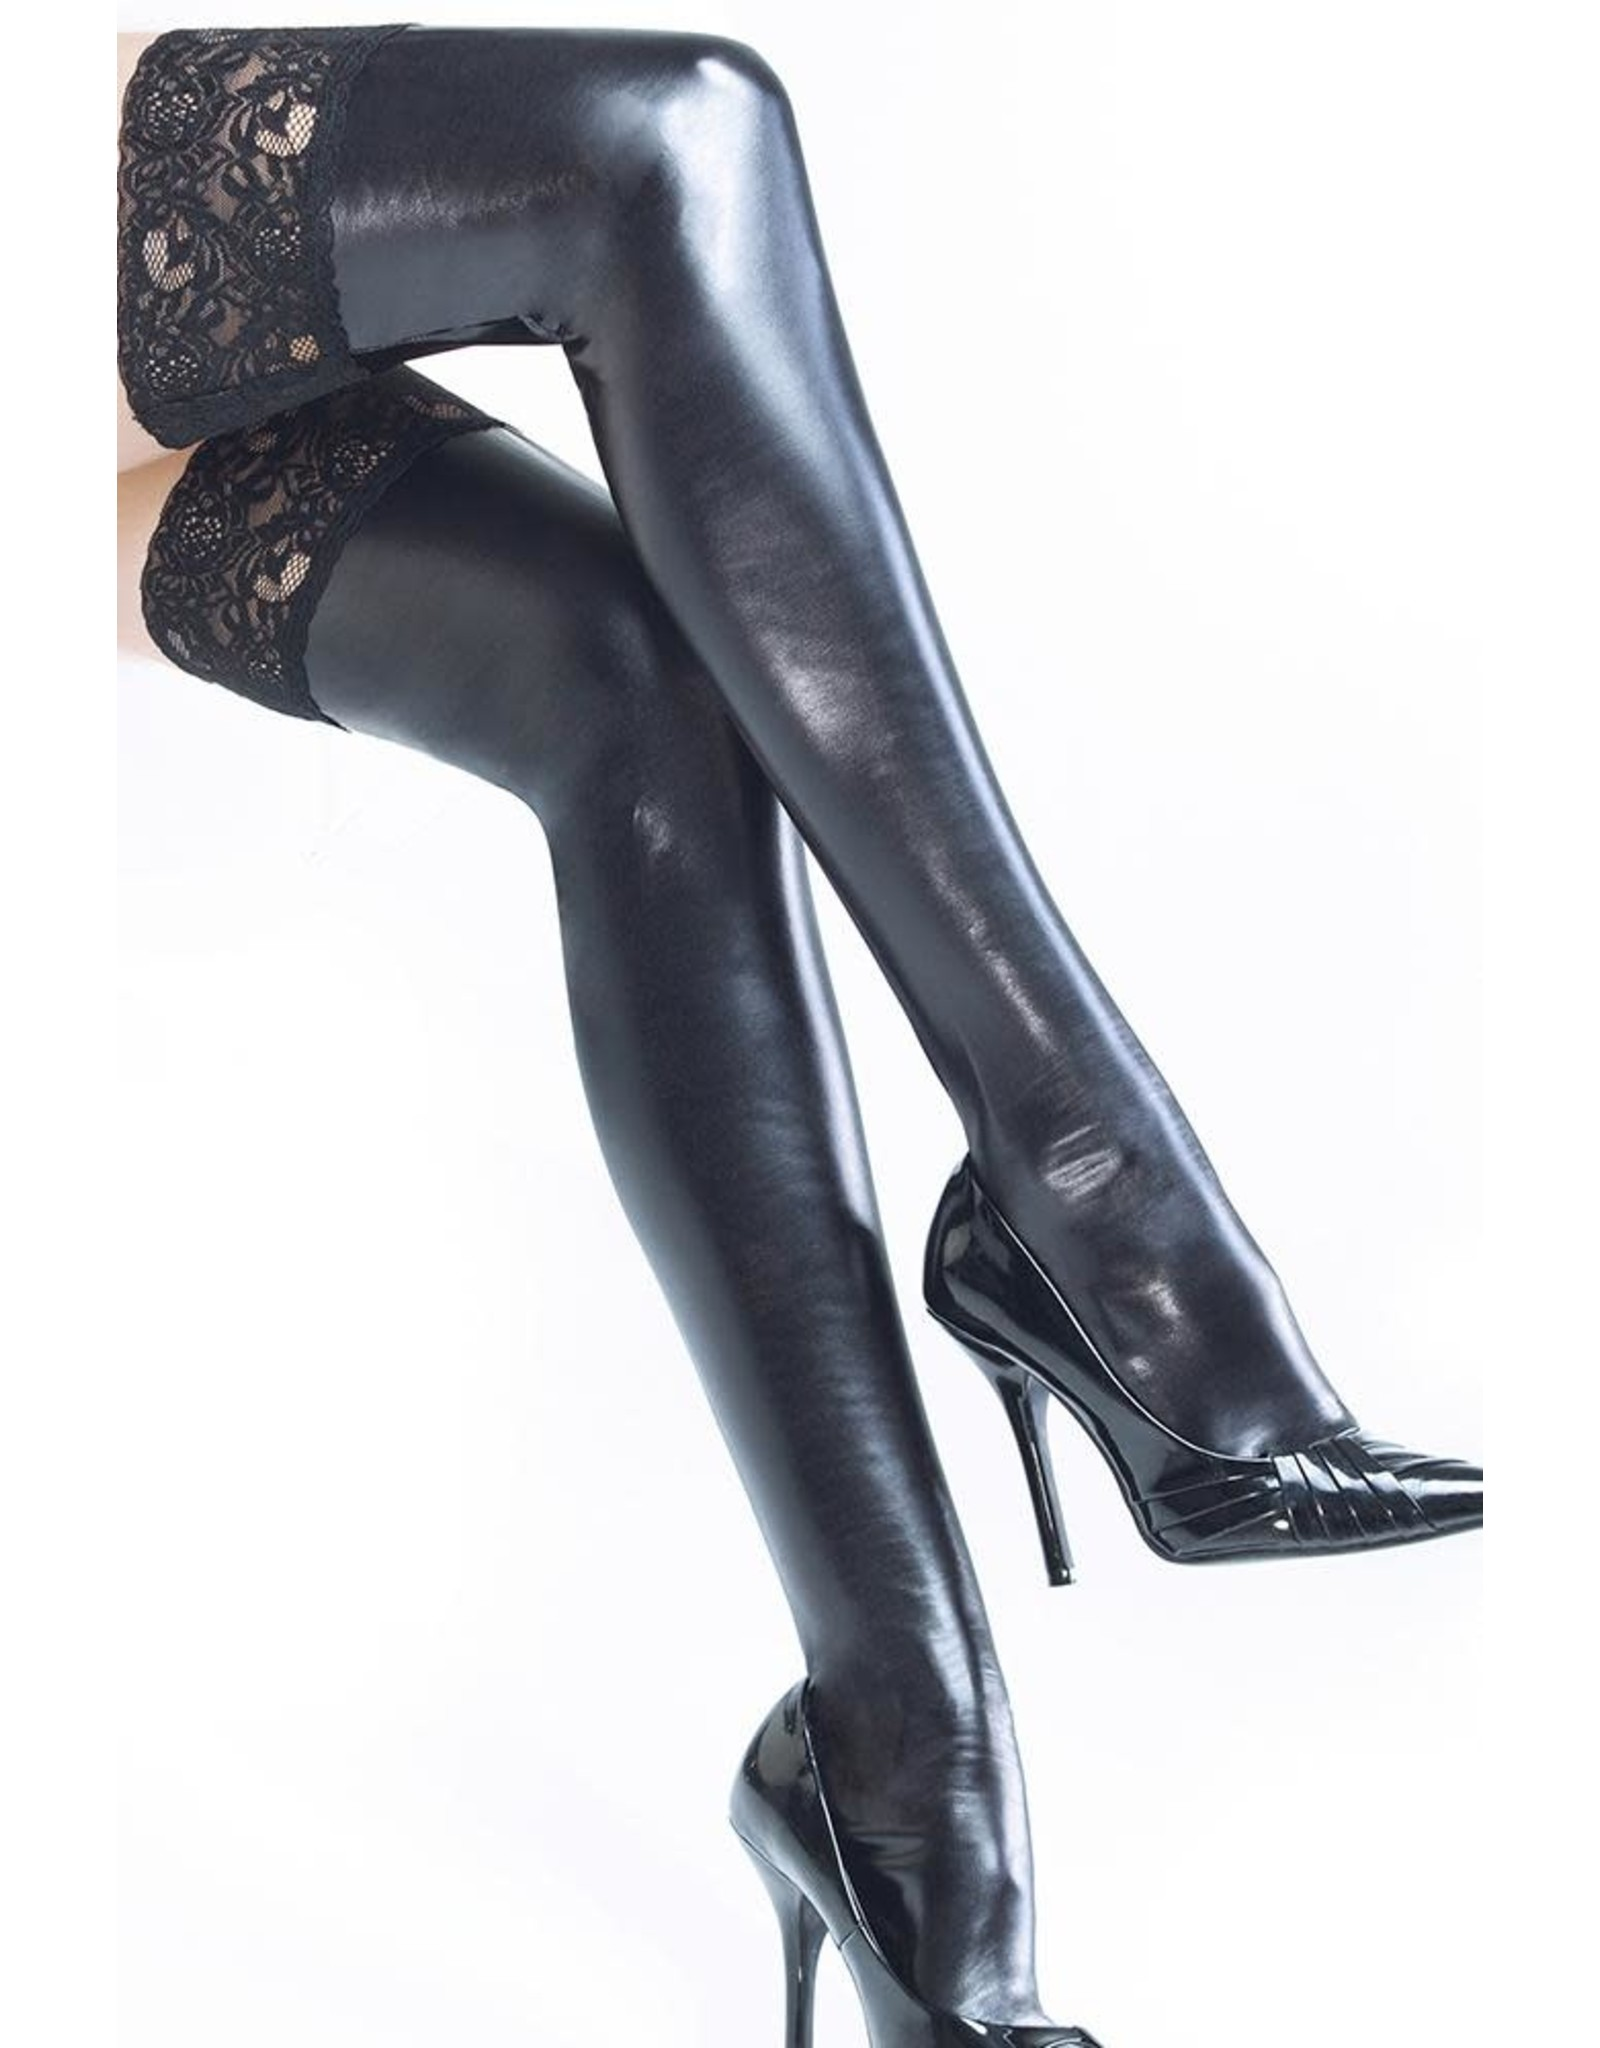 Coquette Coquette - Wetlook Black Thigh Highs with Silicone Grip Tops - OS